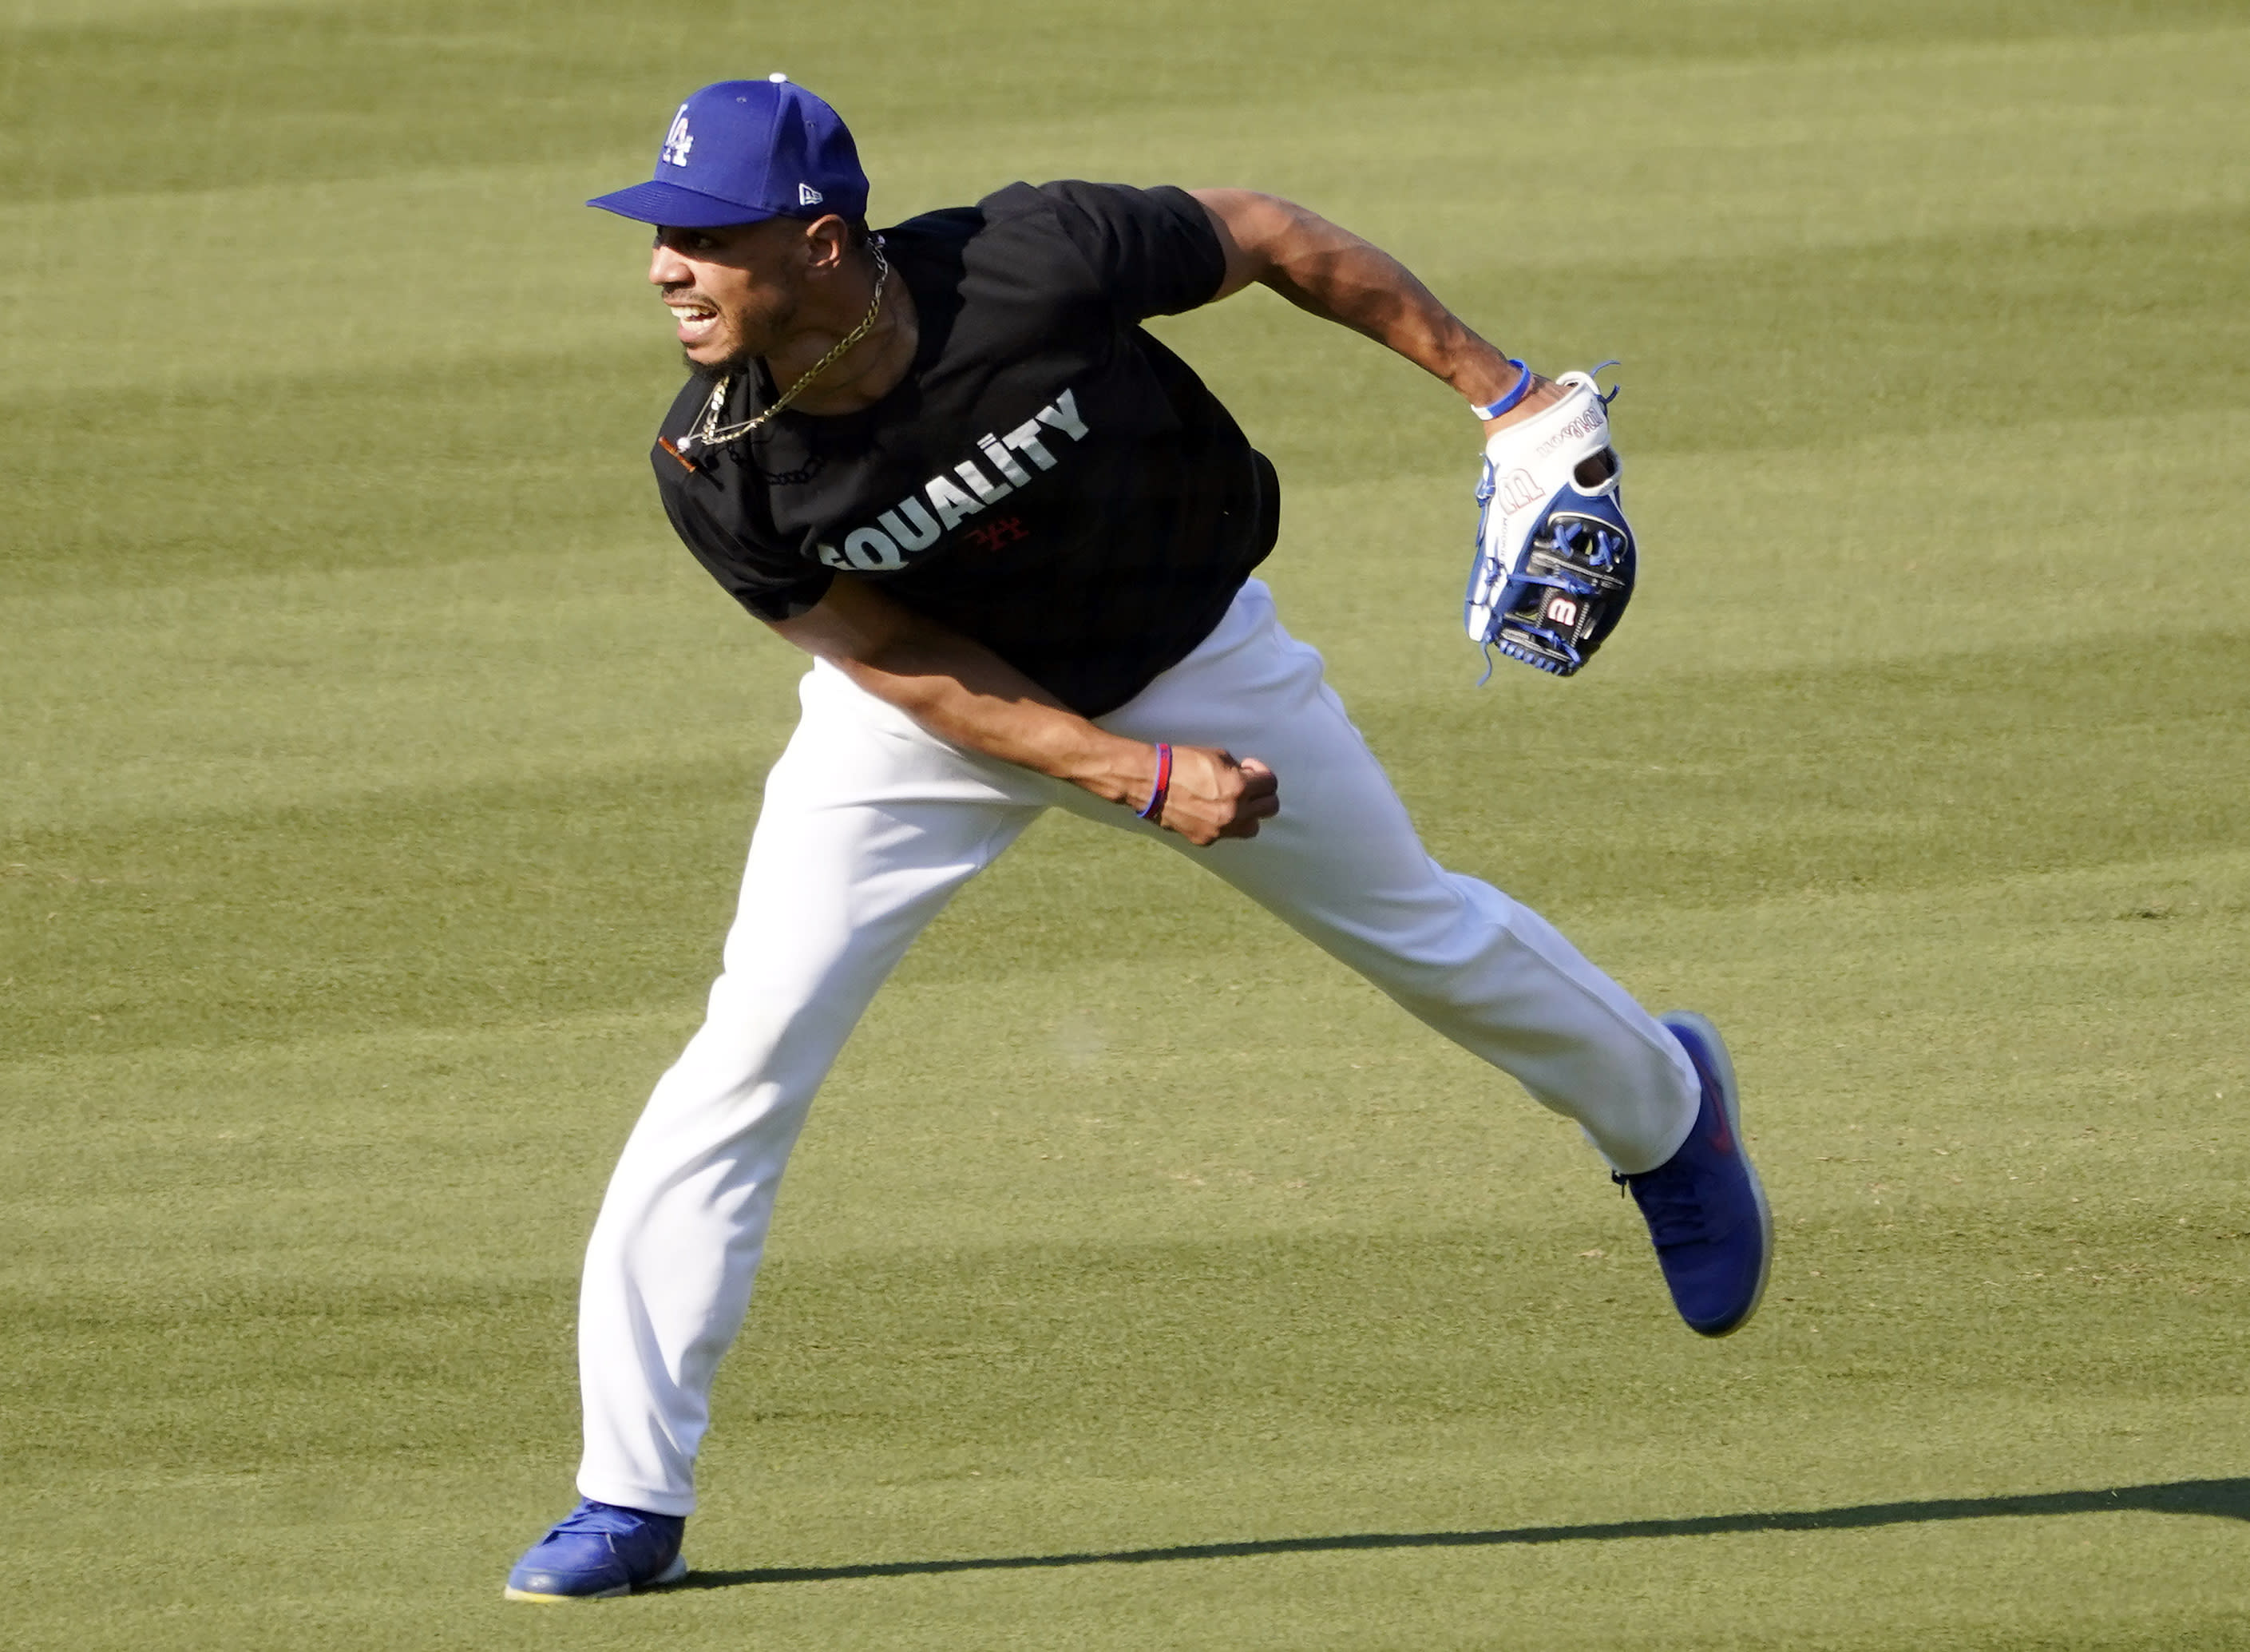 Los Angeles Dodgers' Mookie Betts follows through on a throw to the infield during a workout, Tuesday, Sept. 29, 2020, at Dodger Stadium in Los Angeles, ahead of Wednesday's Game 1 of a National League wild-card baseball series against the Milwaukee Brewers. (AP Photo/Chris Pizzello)